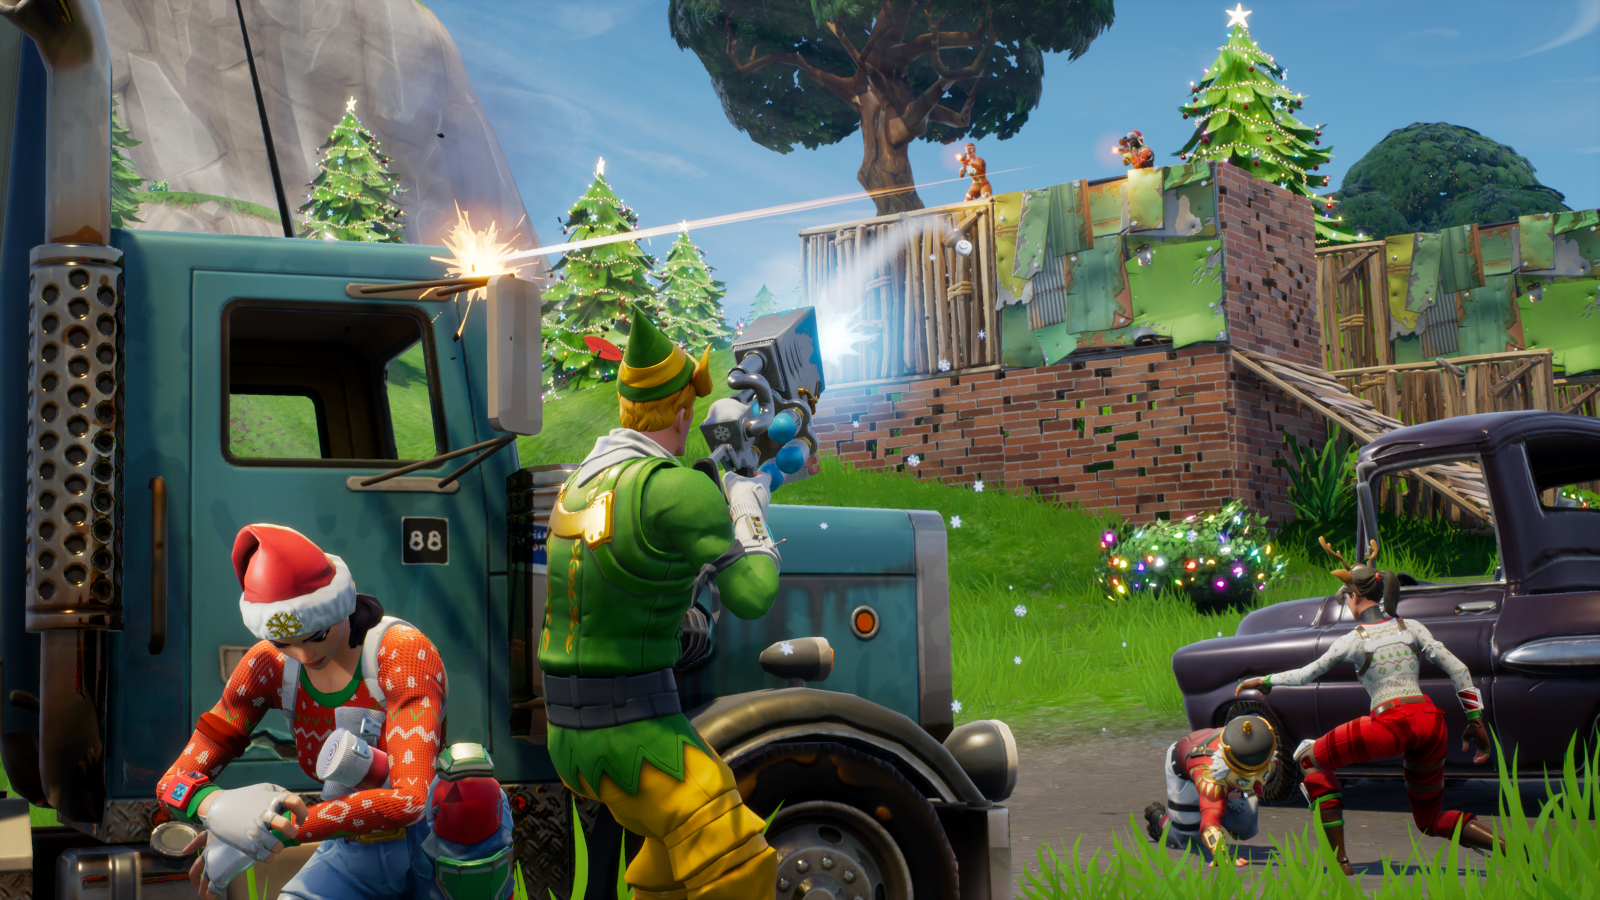 fortnite road trip challenges get the loading screens and find the hidden battle stars - fortnite road